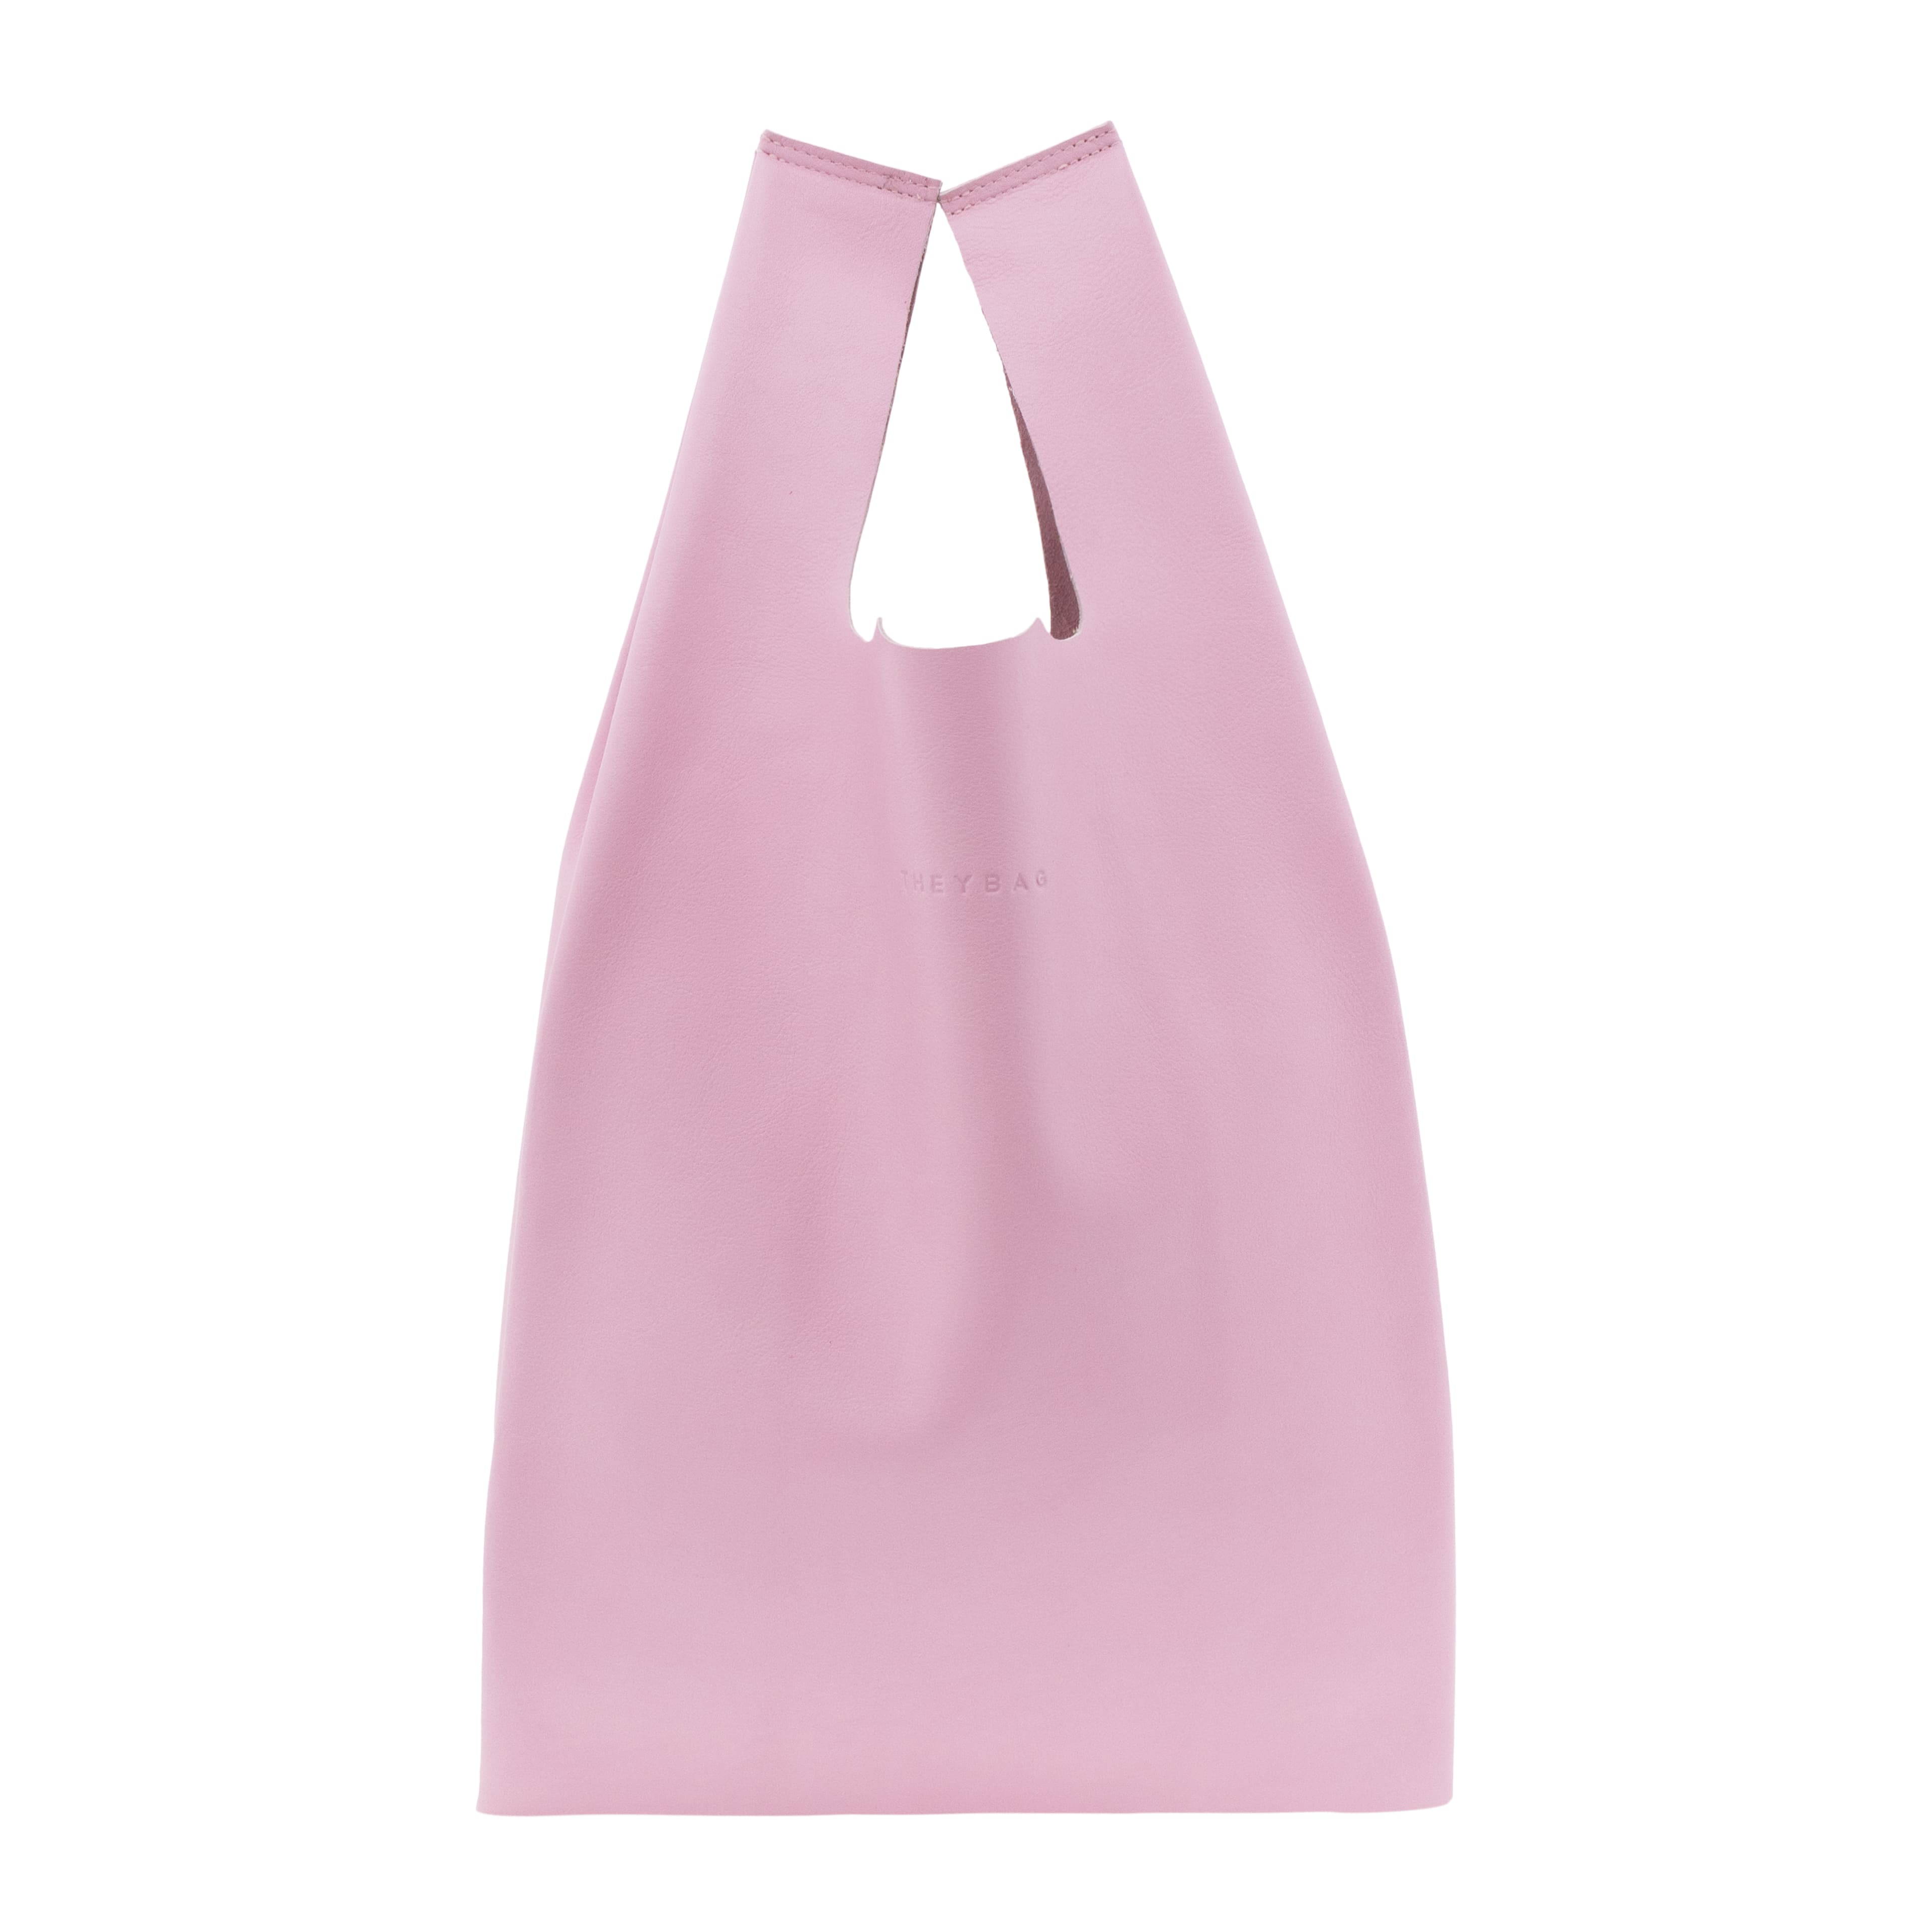 look THEYBAG_PINK_PVP150EUROS(1)